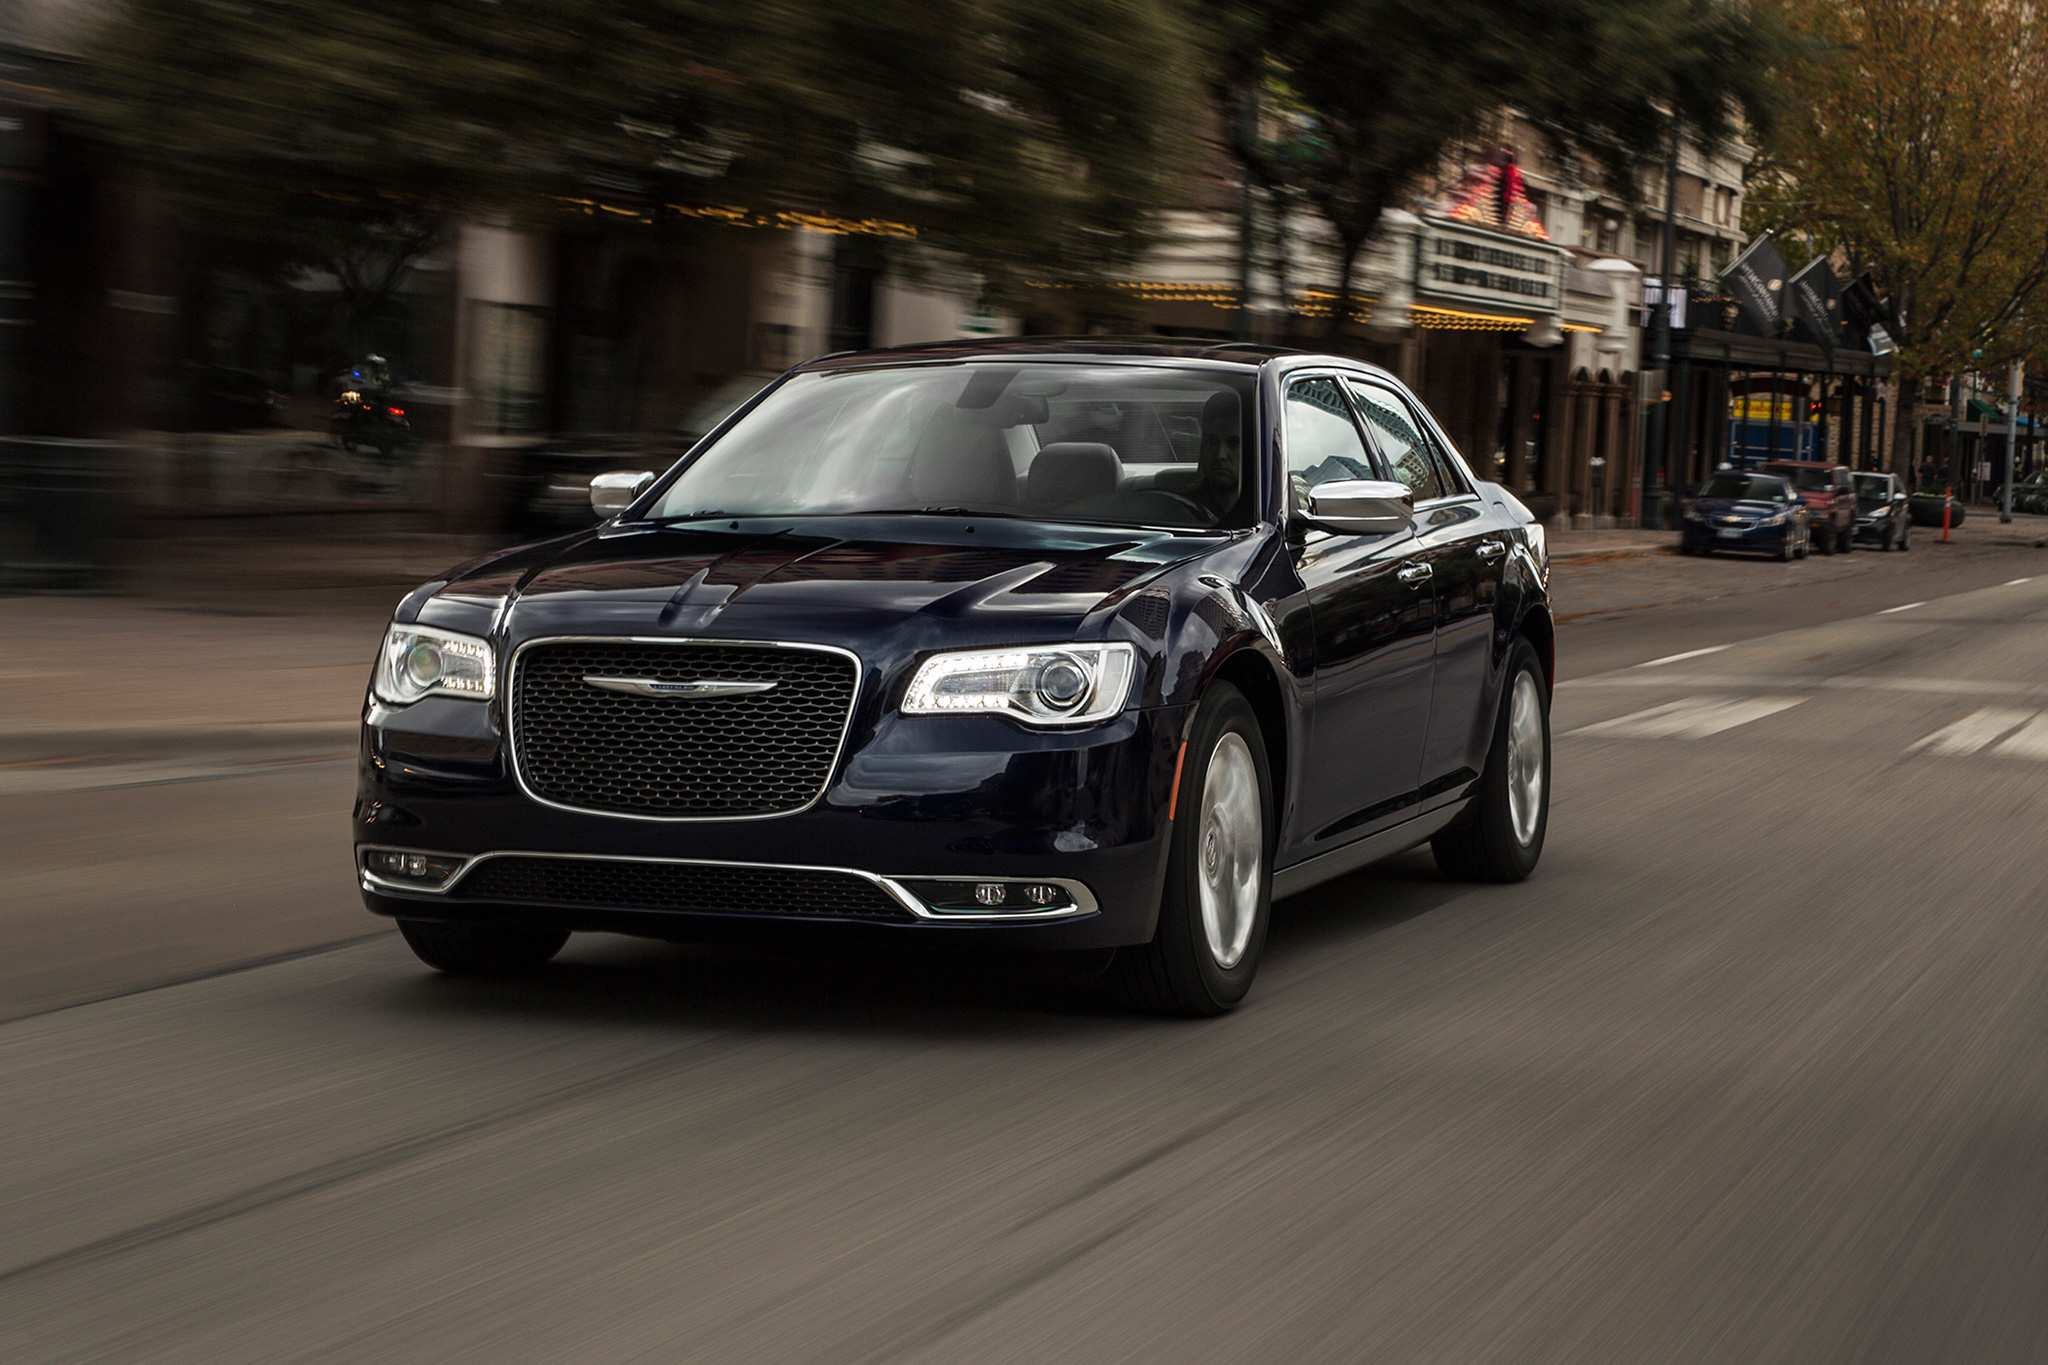 38 New 2019 Chrysler 300 Srt 8 Release